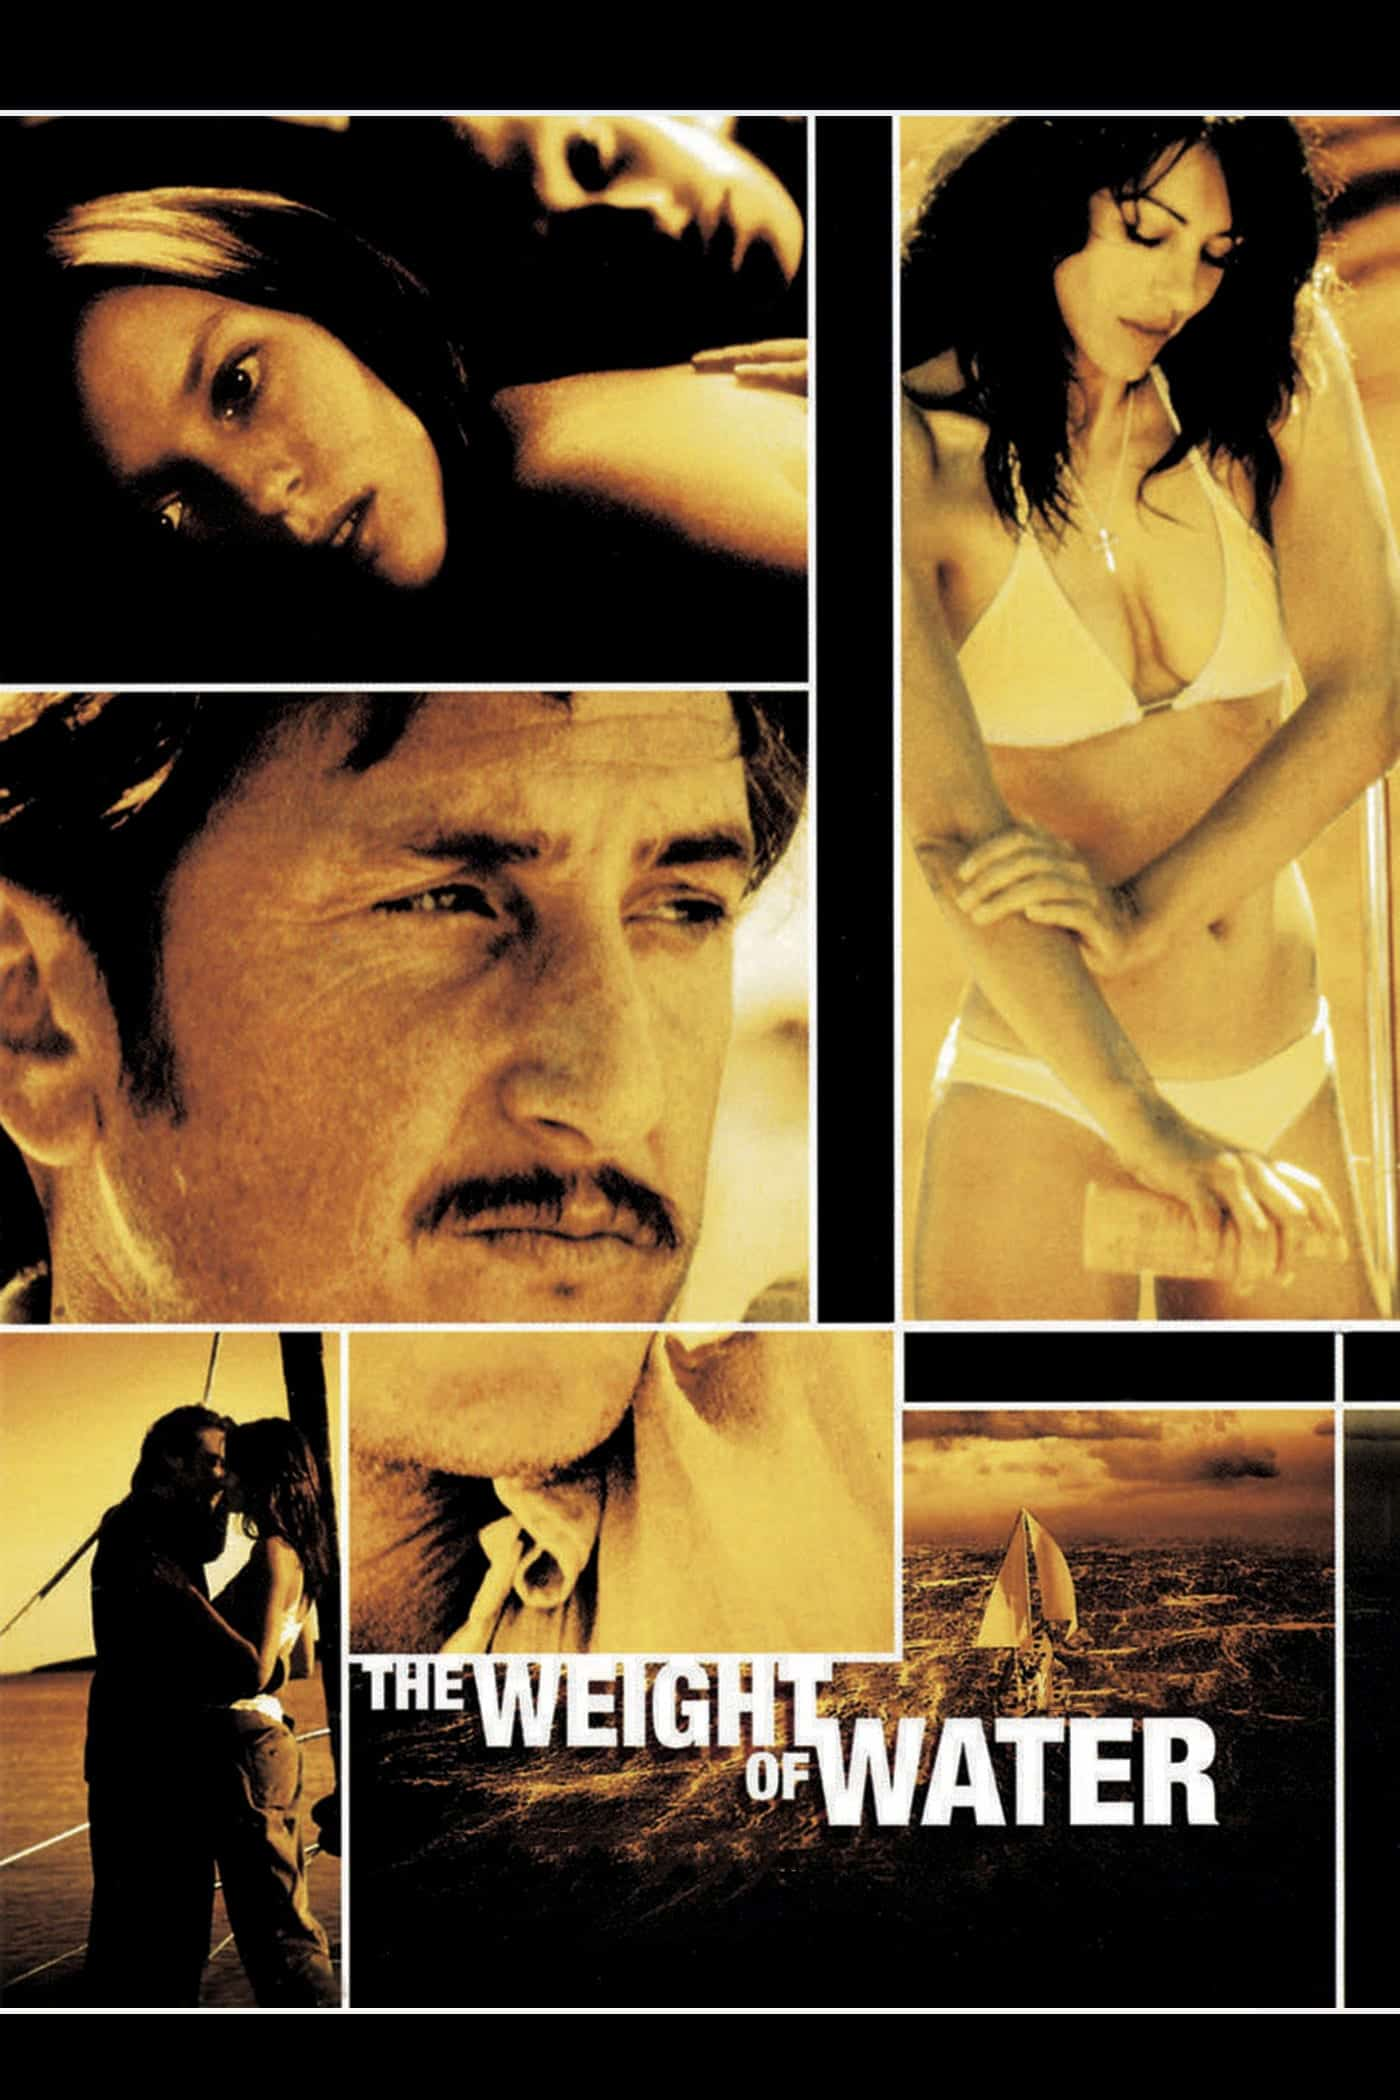 The Weight of Water, 2000